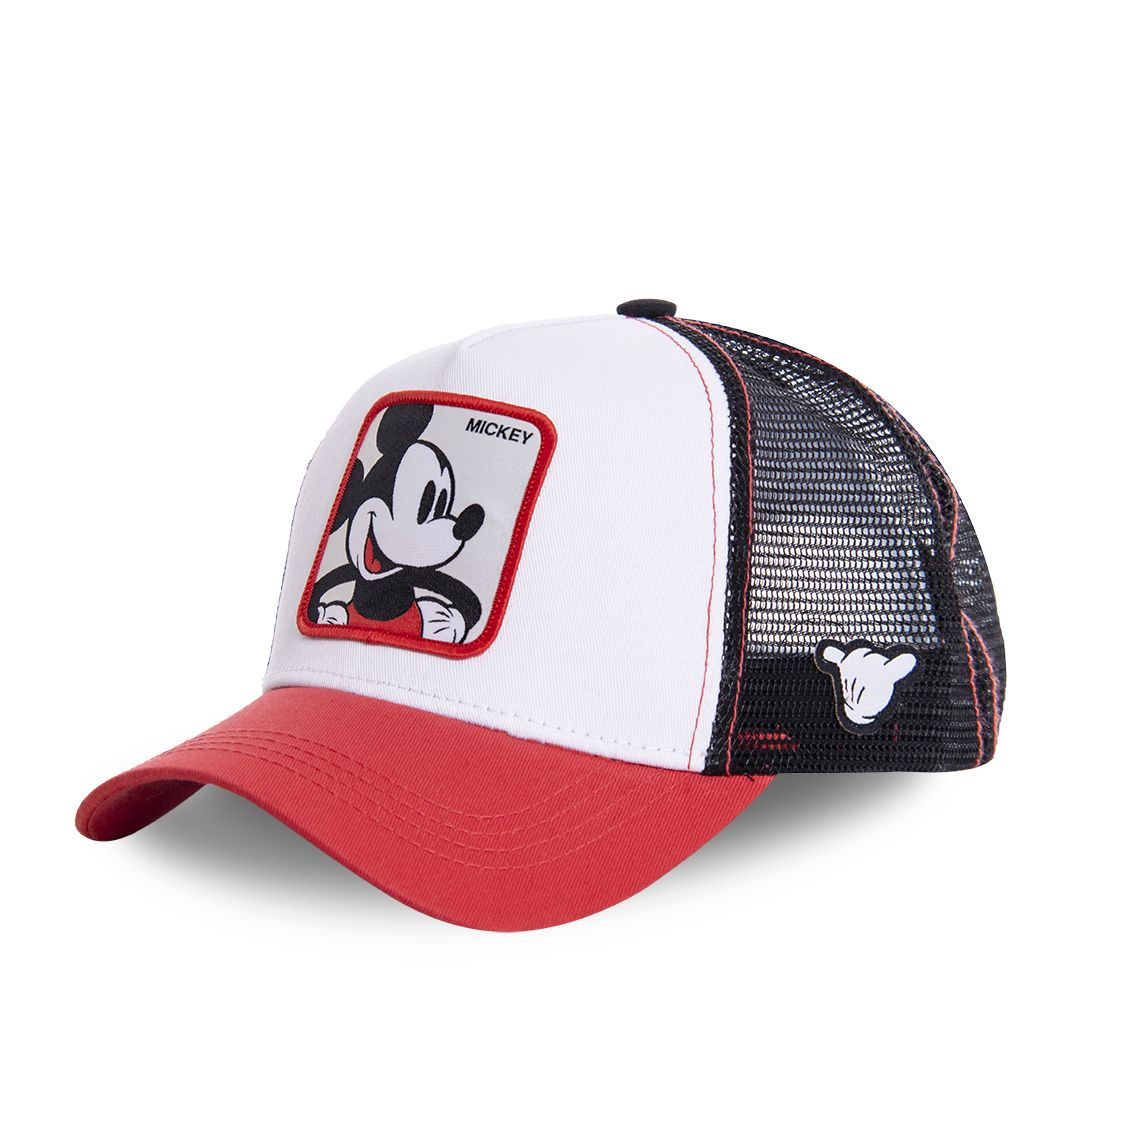 Casquette capslab disney mickey blanc et rouge (photo)